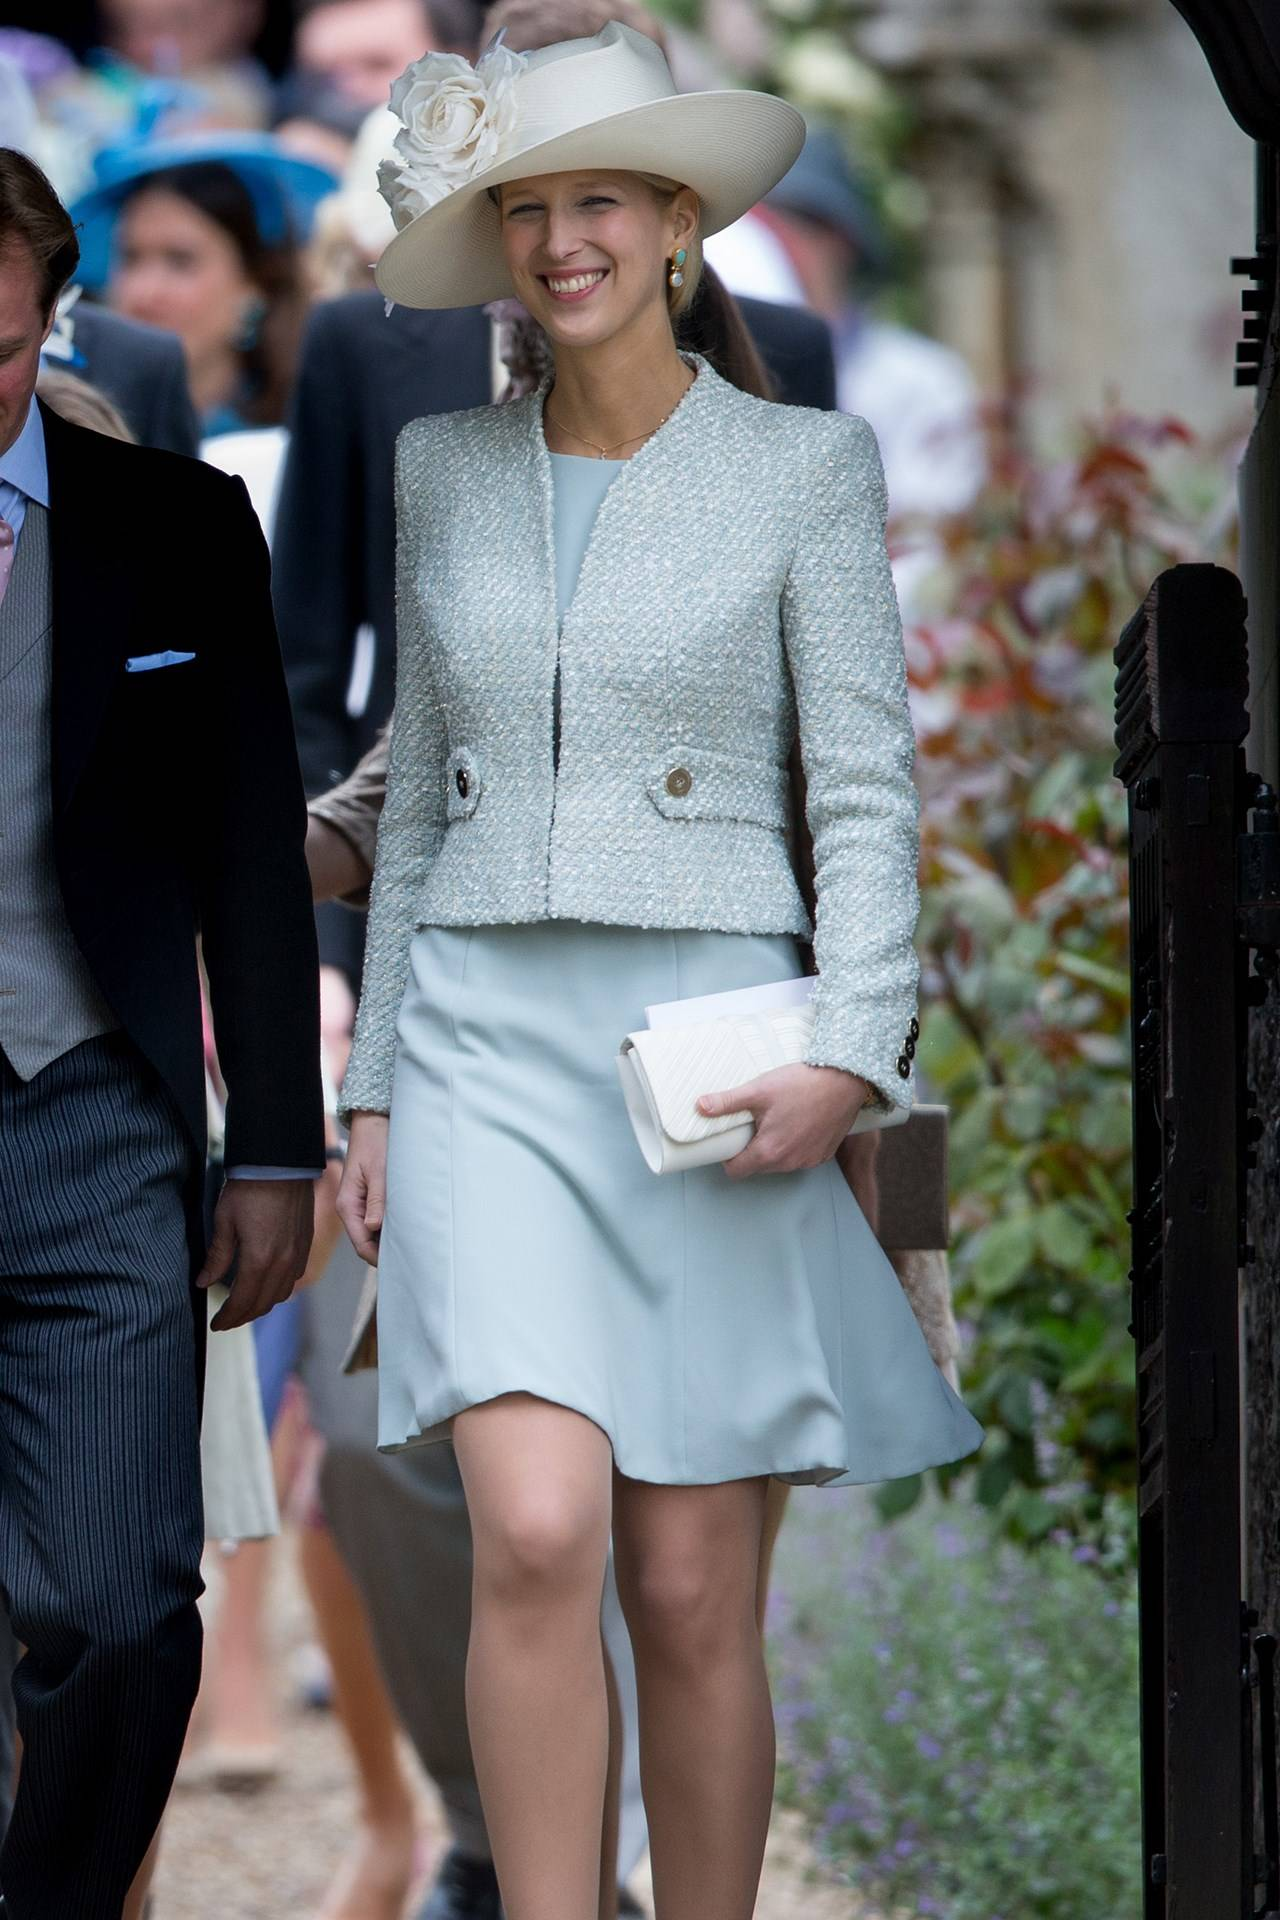 Pippa Middleton wedding photos: James Matthews, Prince George ...